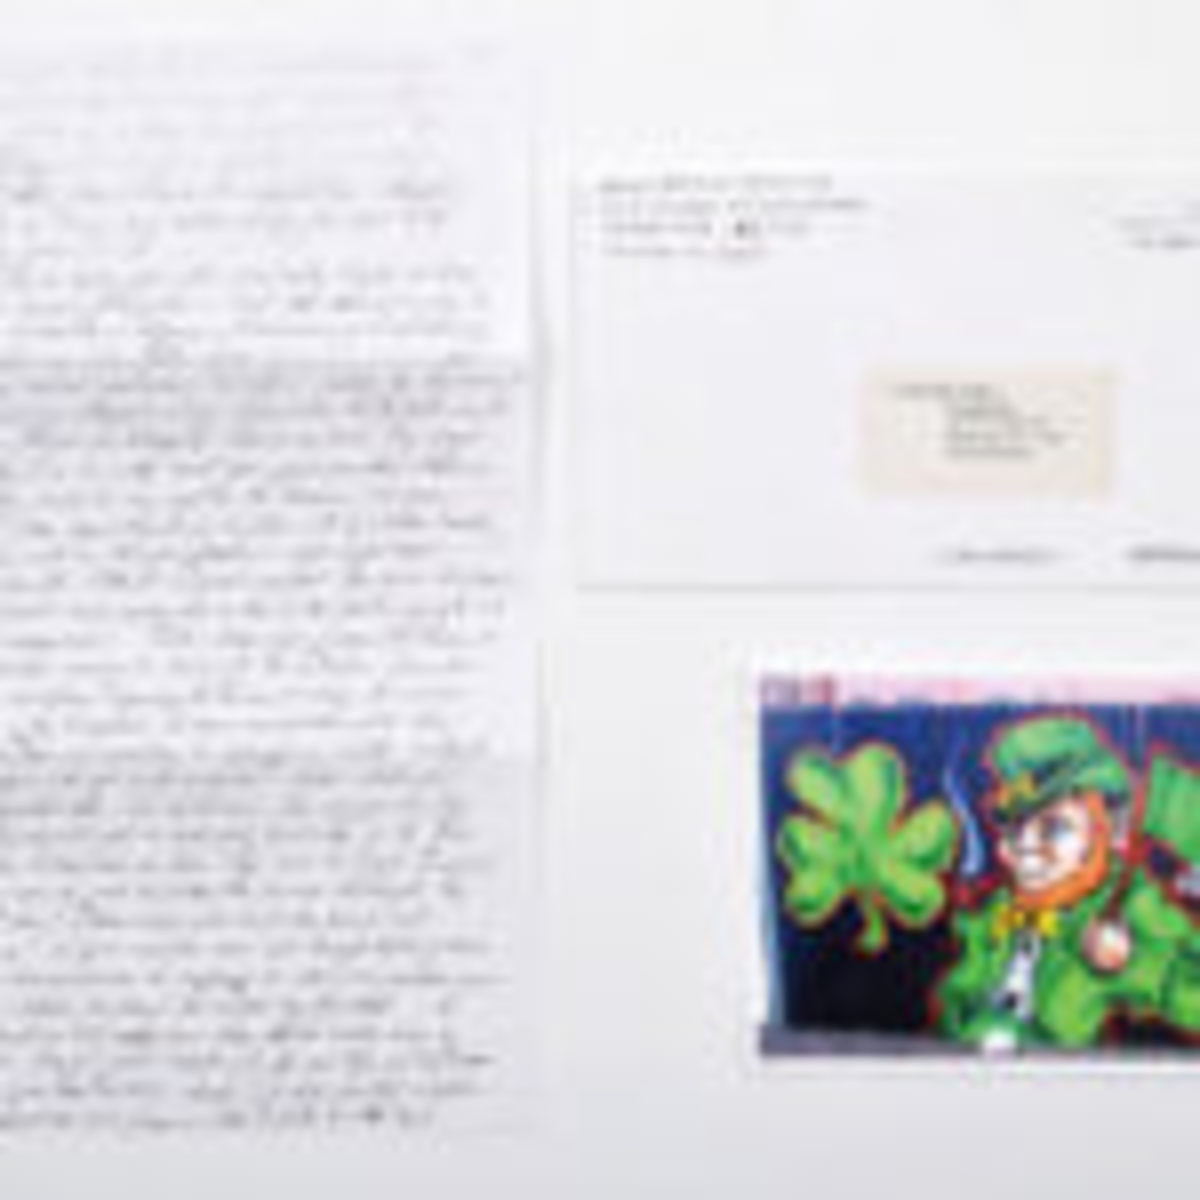 St. Patrick's Day 2015 notecard and handwritten letter sent by Boston gangster Whitey Bulger from behind bars, $1,430. Photos courtesy of Urban Culture Auctions